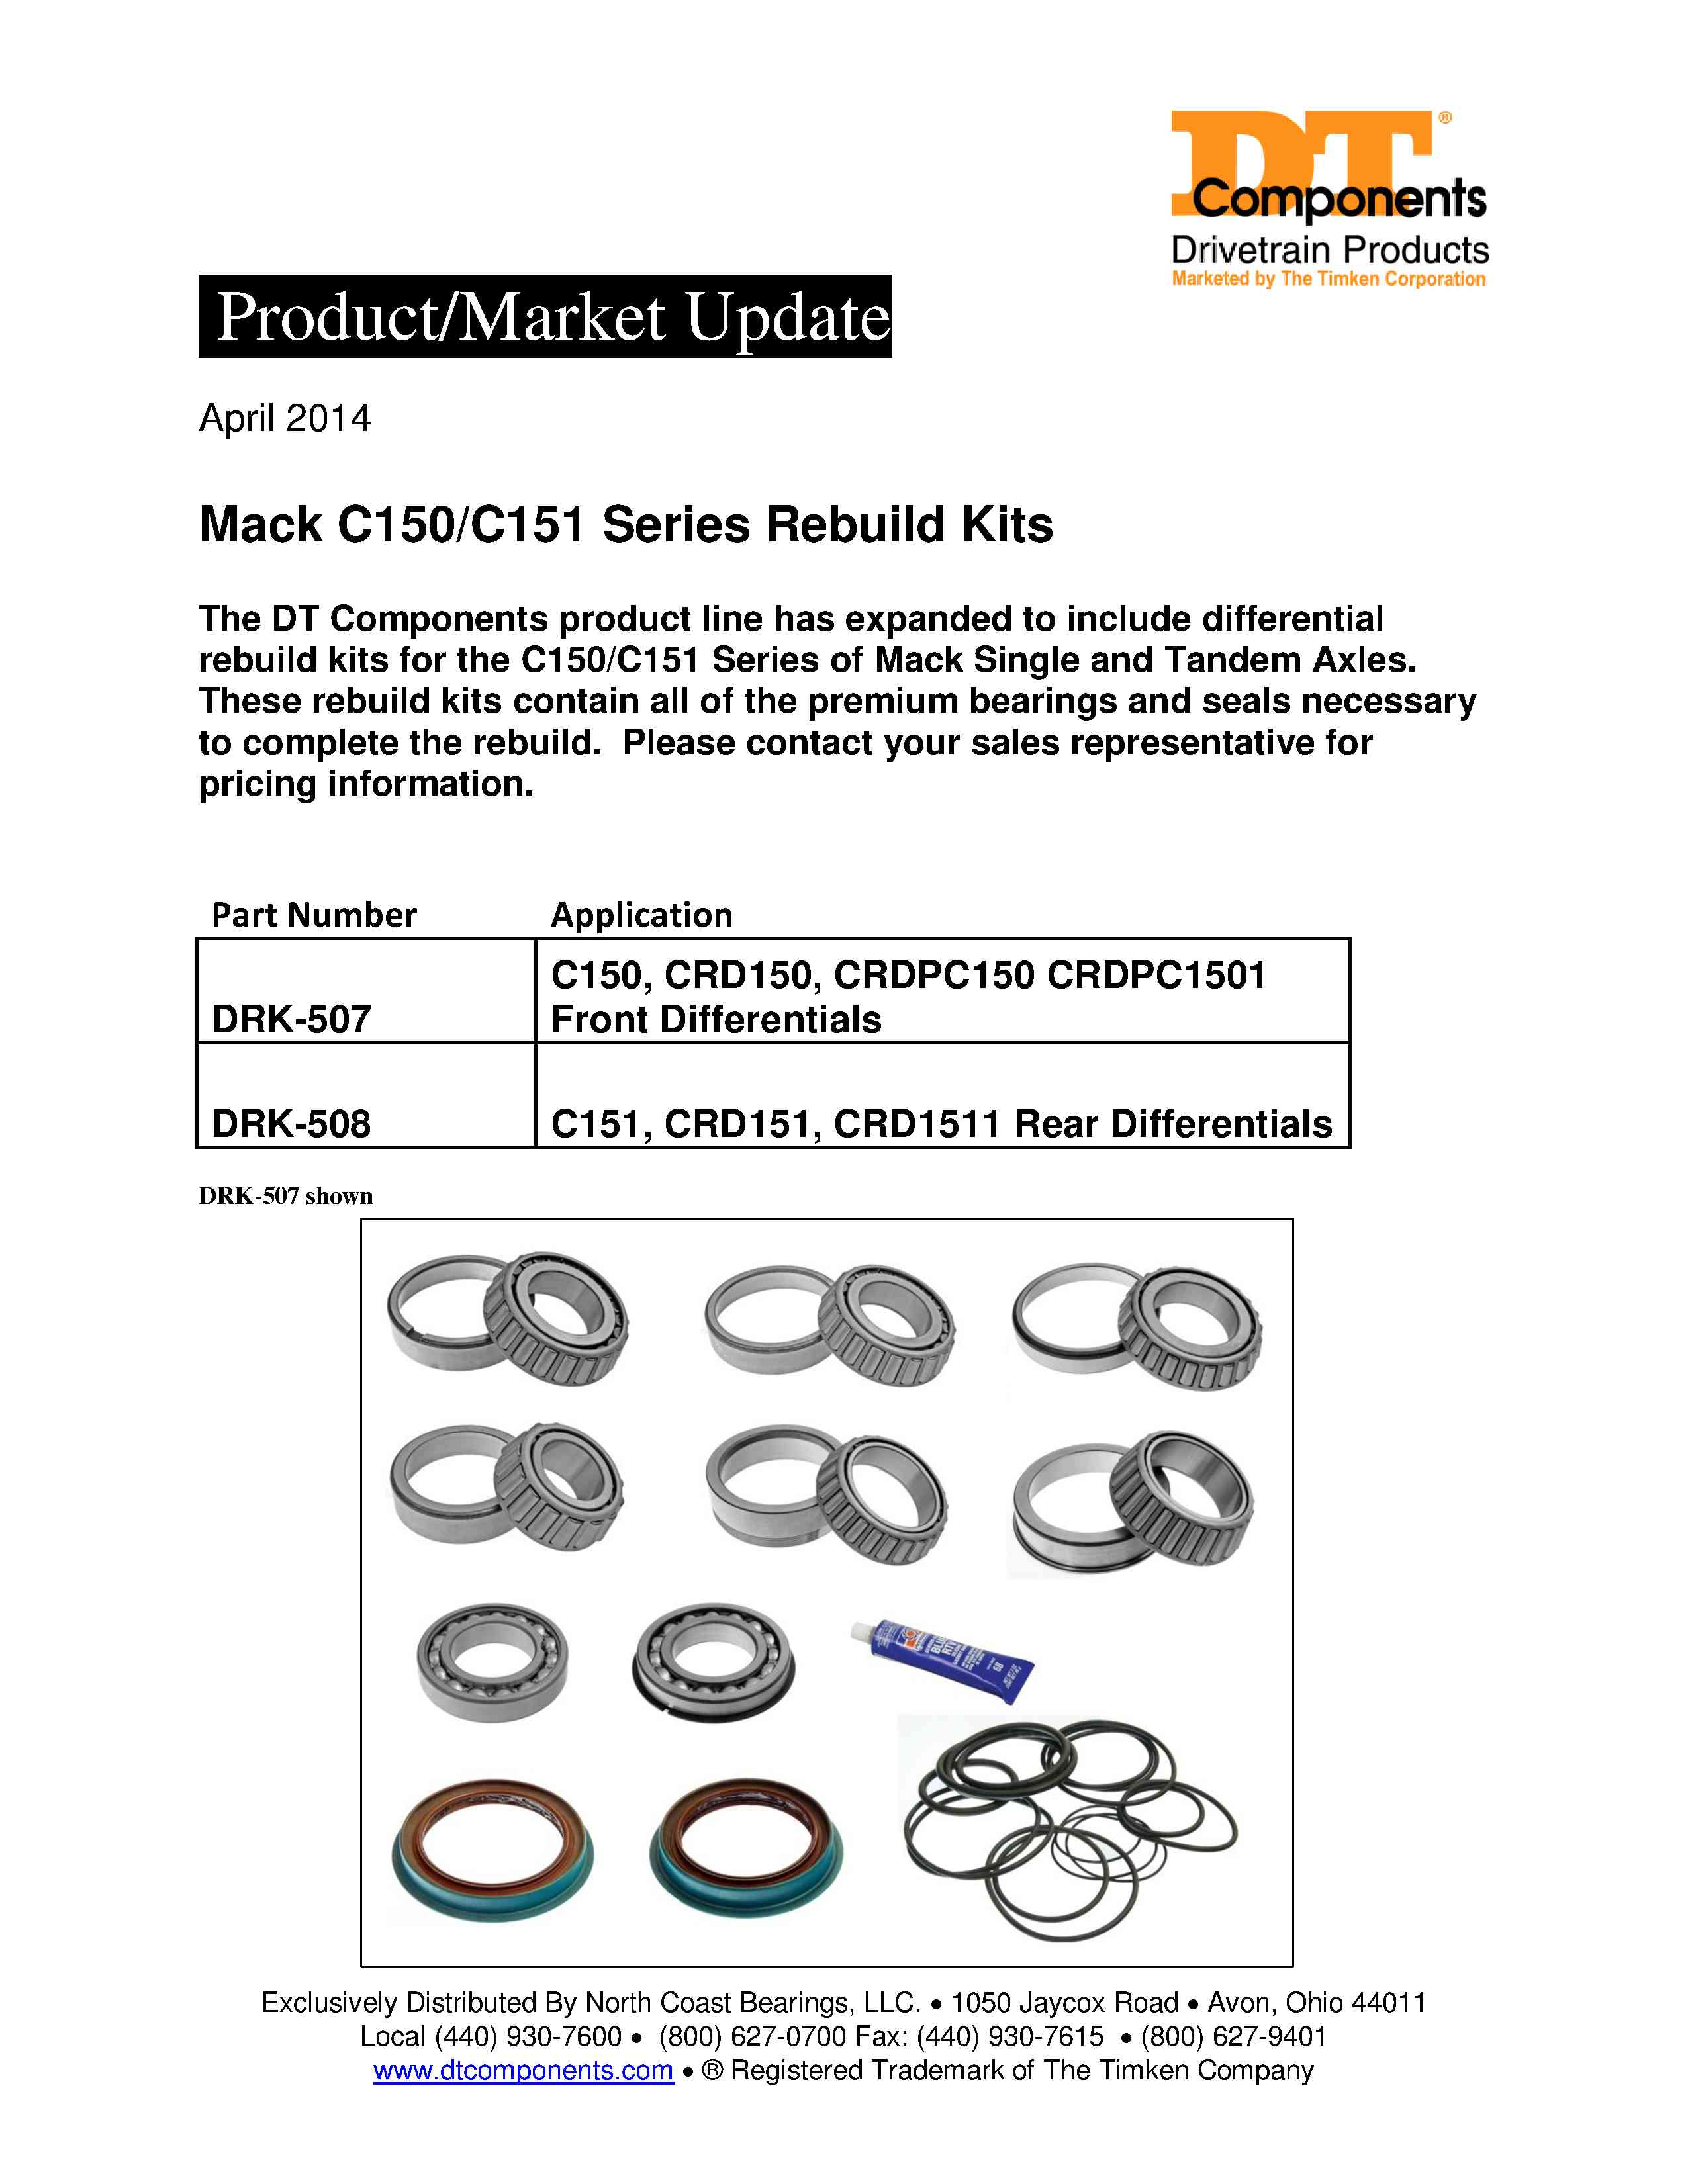 Timken TRK350 Differential Bearing and Seal Kit